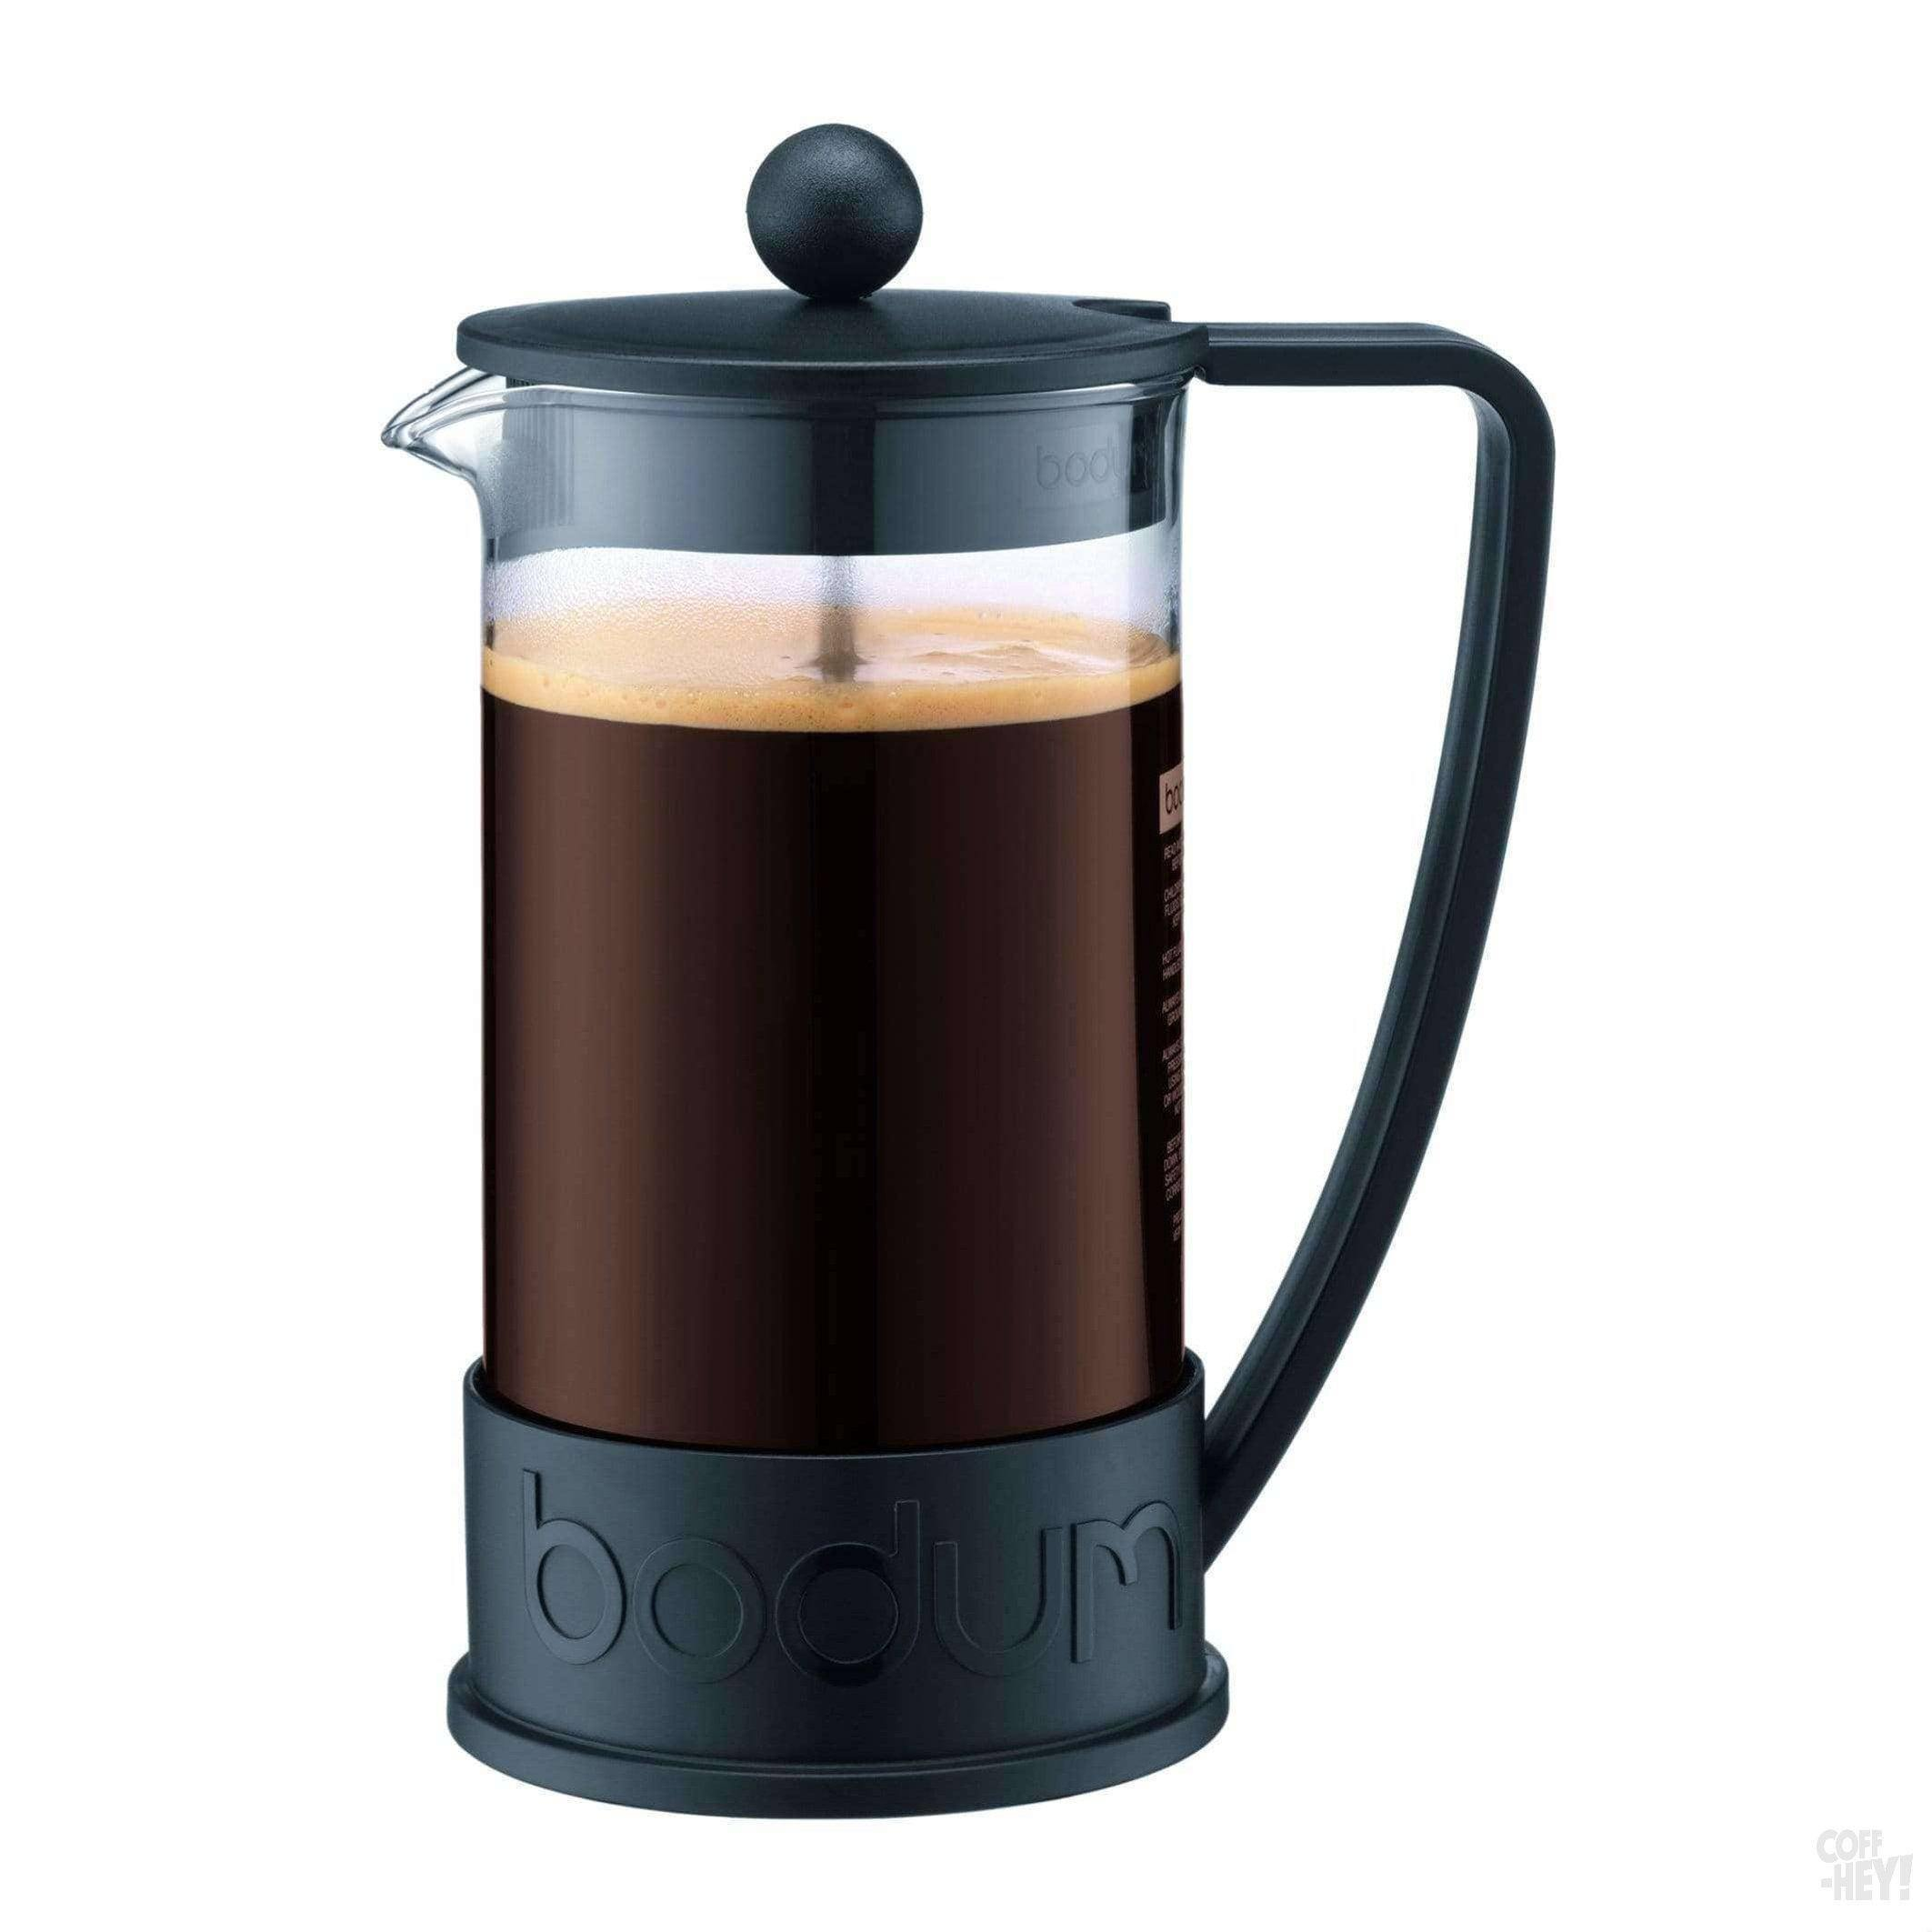 Bodum Brazil French Press Coffee Maker, 8 Cup, 1.0 L, 34 oz - Black-Coffee Brewing-Bodum-Coff-Hey!